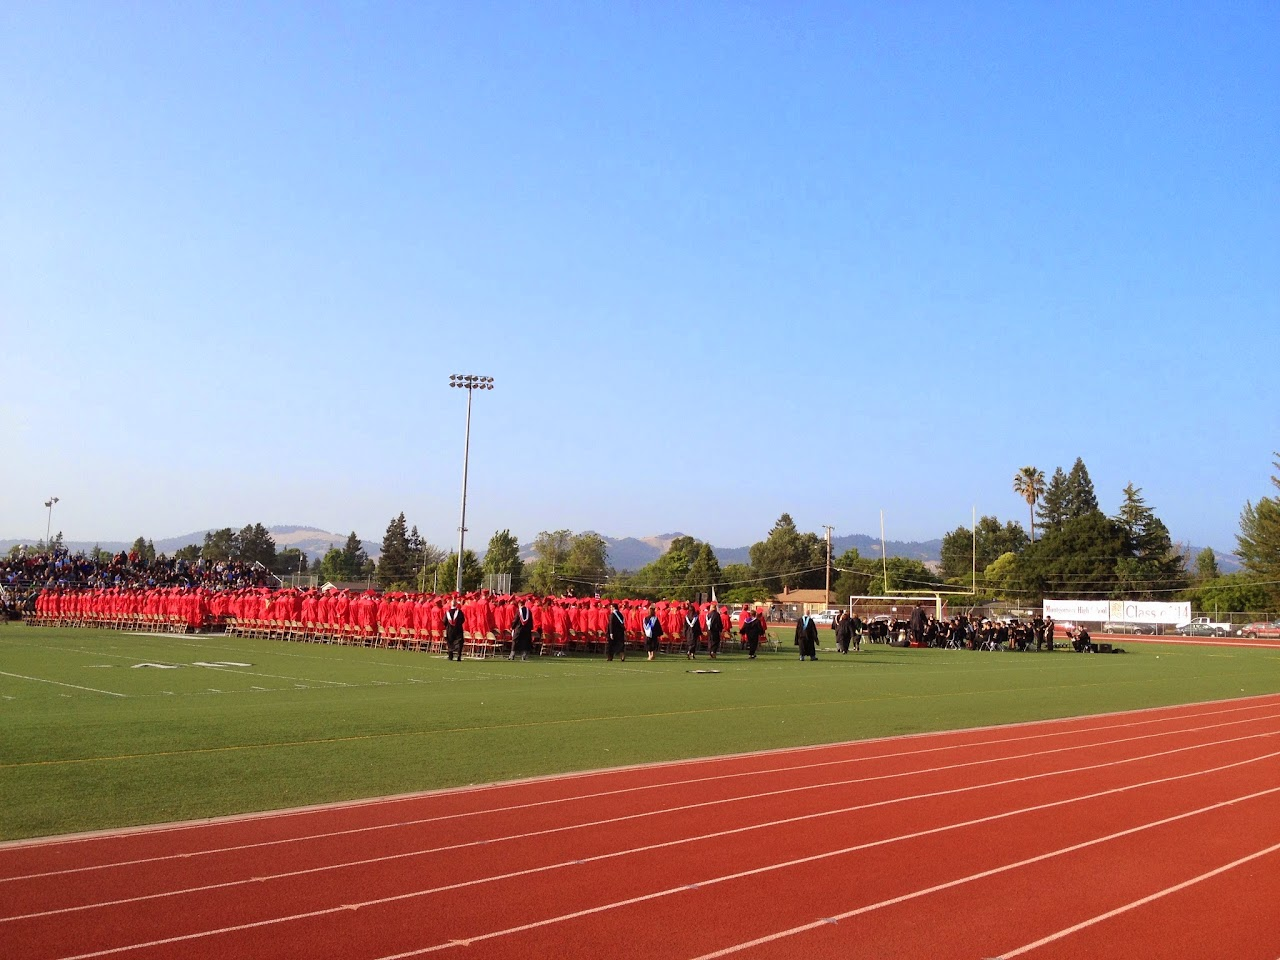 Courtneys Graduation Montgomery High May 2014 - Courtney_graduation_MHS_20140530_26.JPG